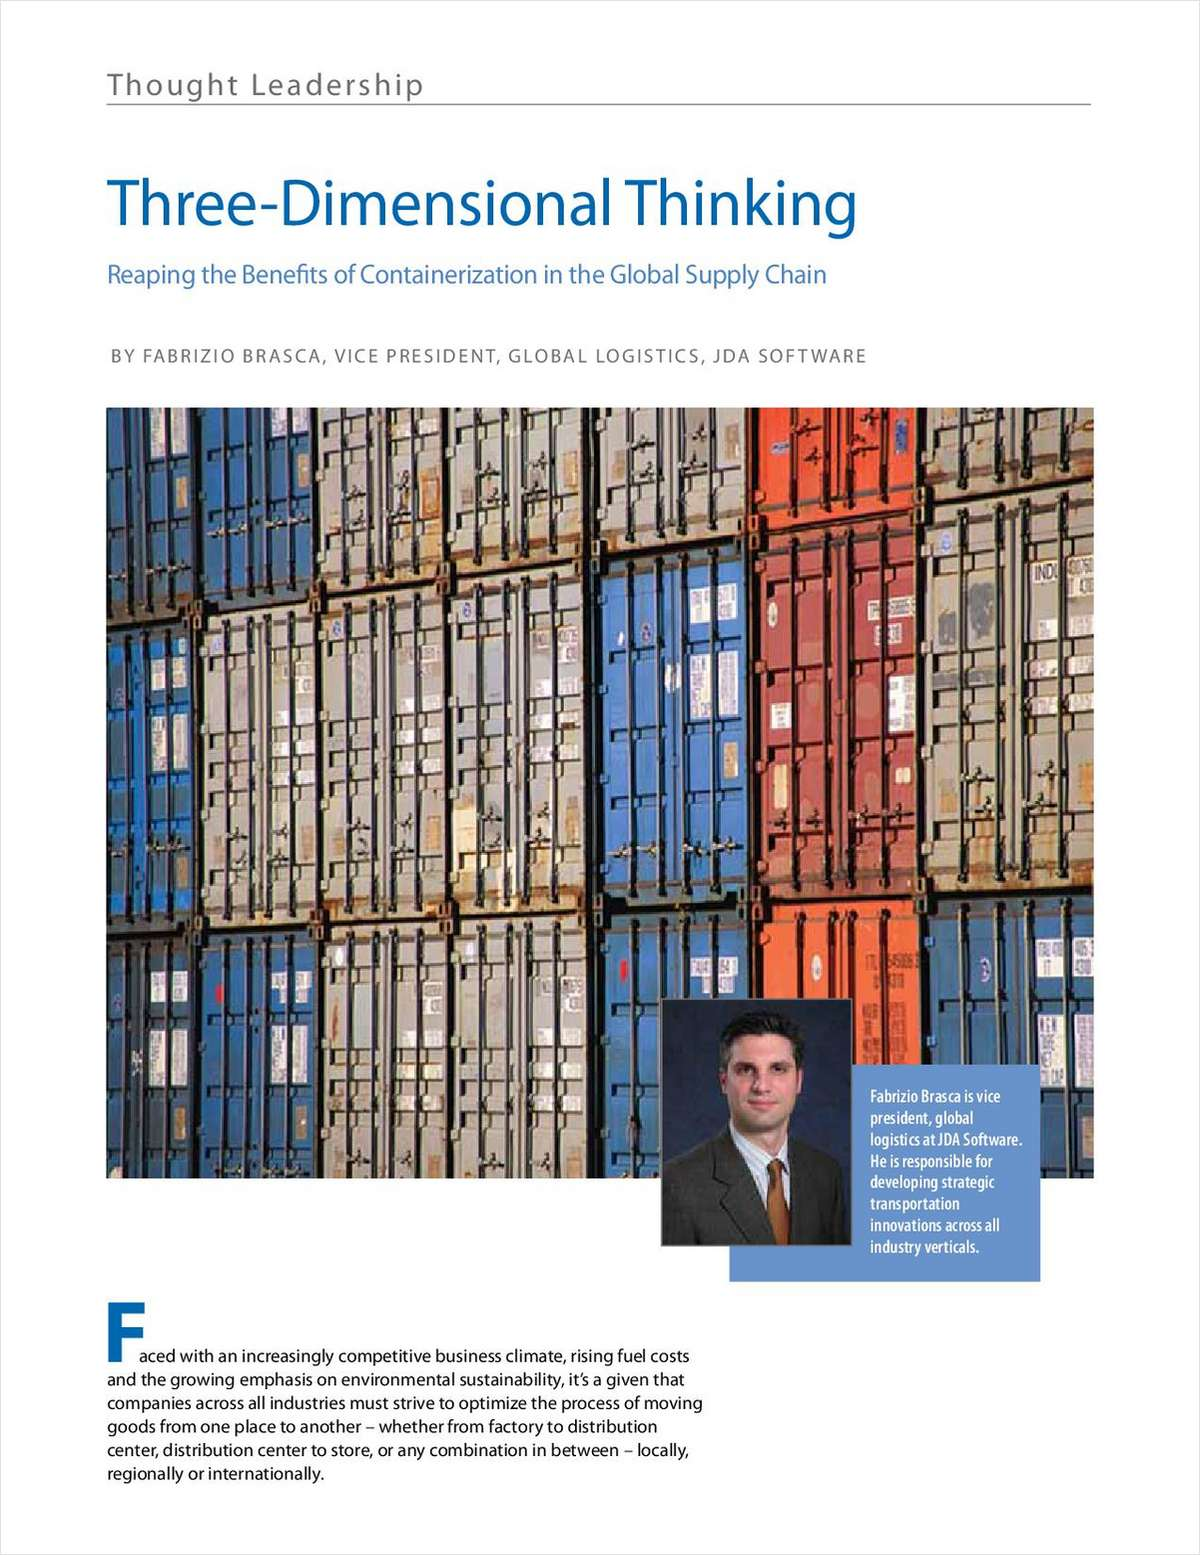 Three-Dimensional Thinking: Reaping the Benefits of Containerization in the Global Supply Chain